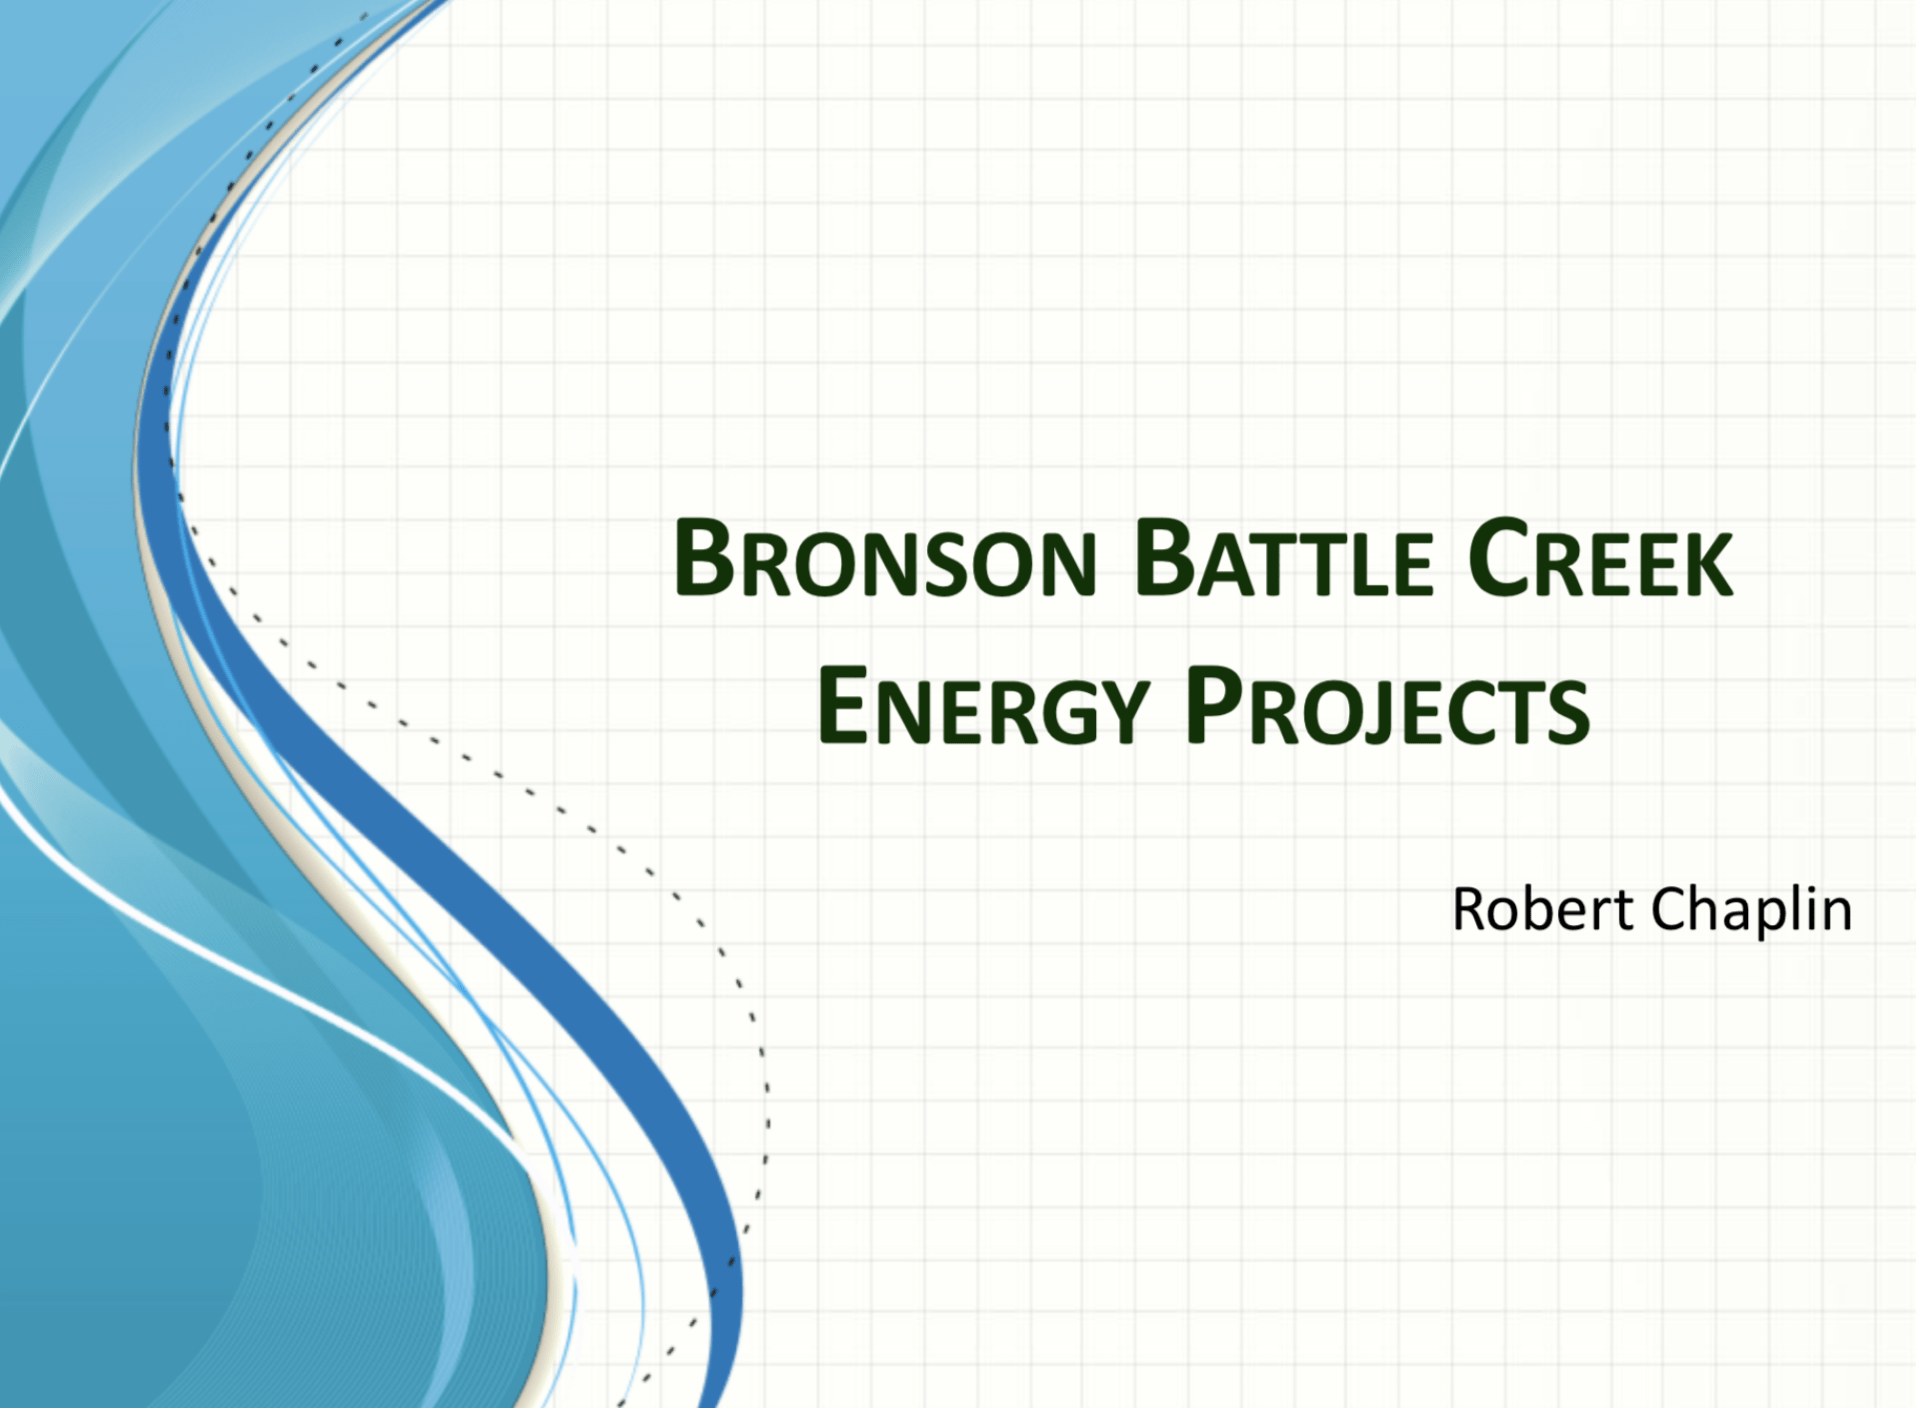 Bronson Battle Creek Energy Projects